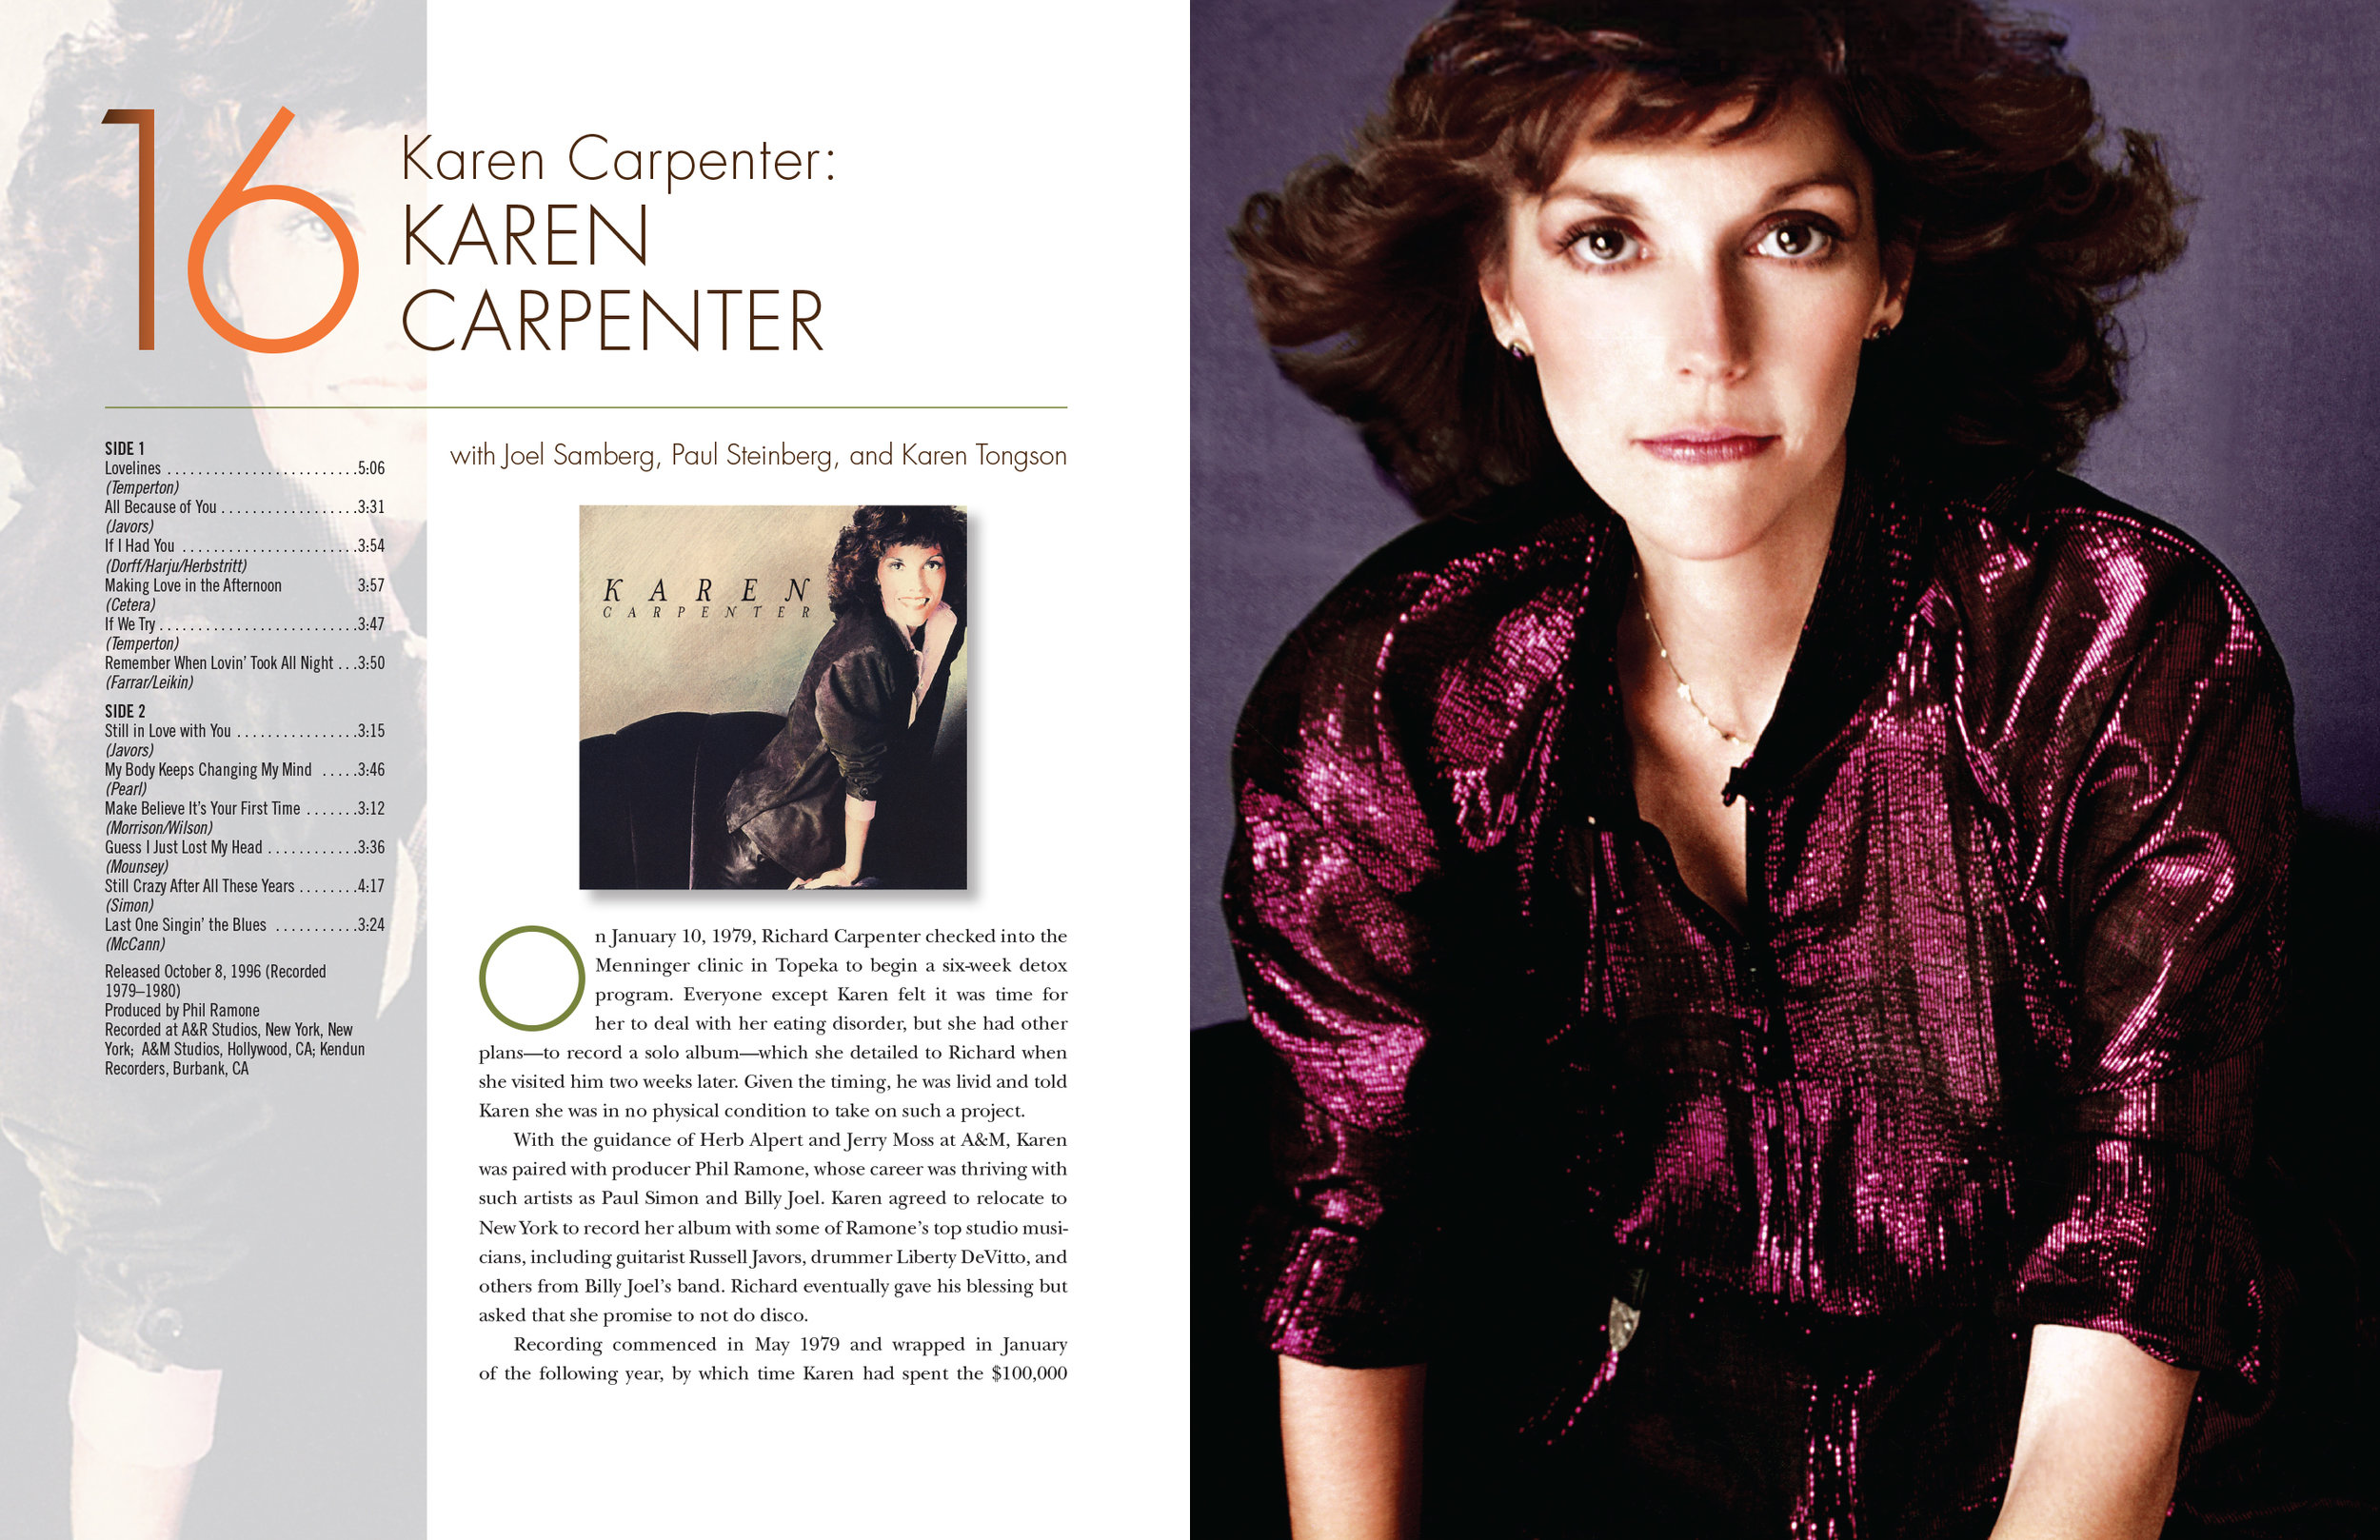 Superstars: Revisiting The Carpenters' Legacy with Author